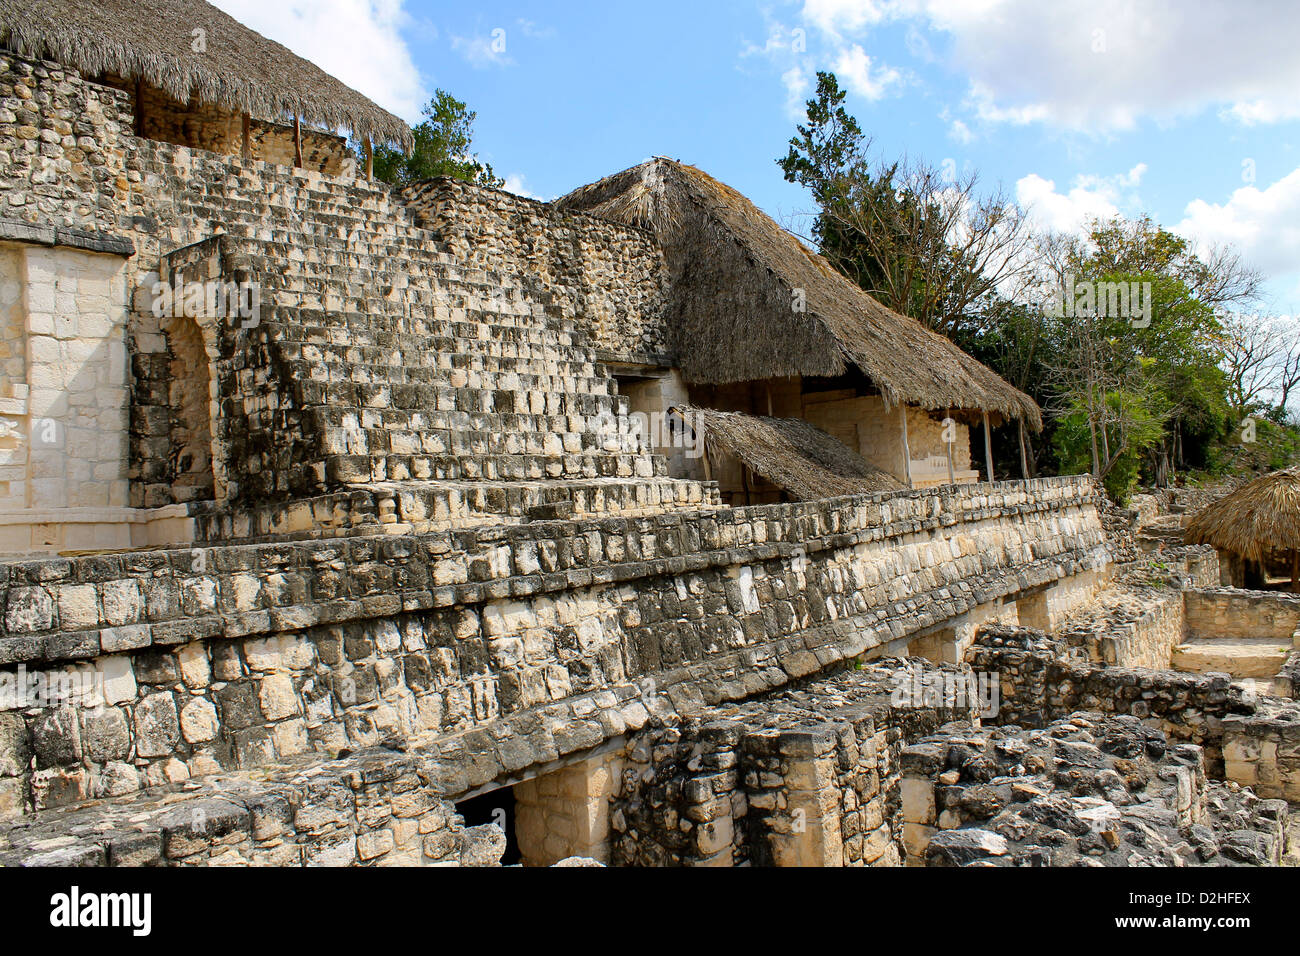 Maya ruins in Yucatan, Mexico - Stock Image